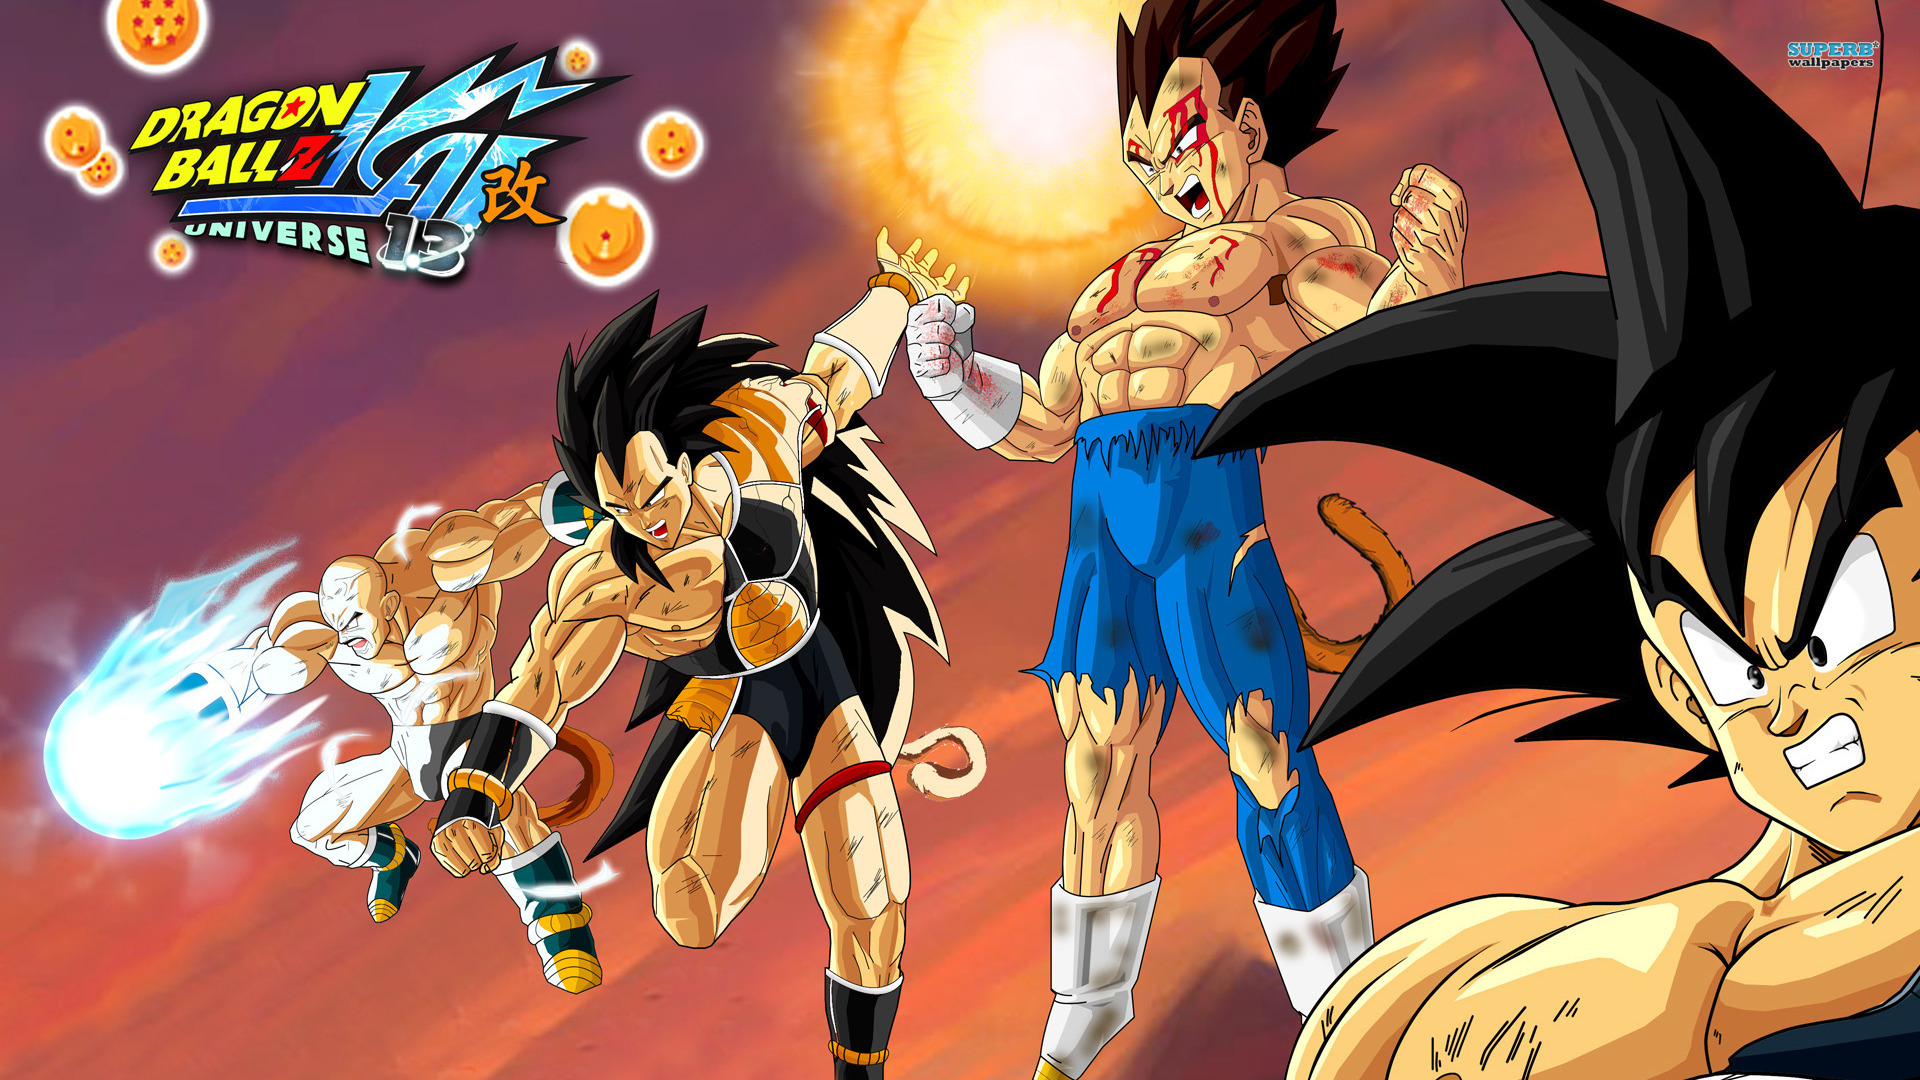 DBZ-Vegeta-1920%C3%971080-Dbz-vegeta-Adorable-wallpaper-wp3604625